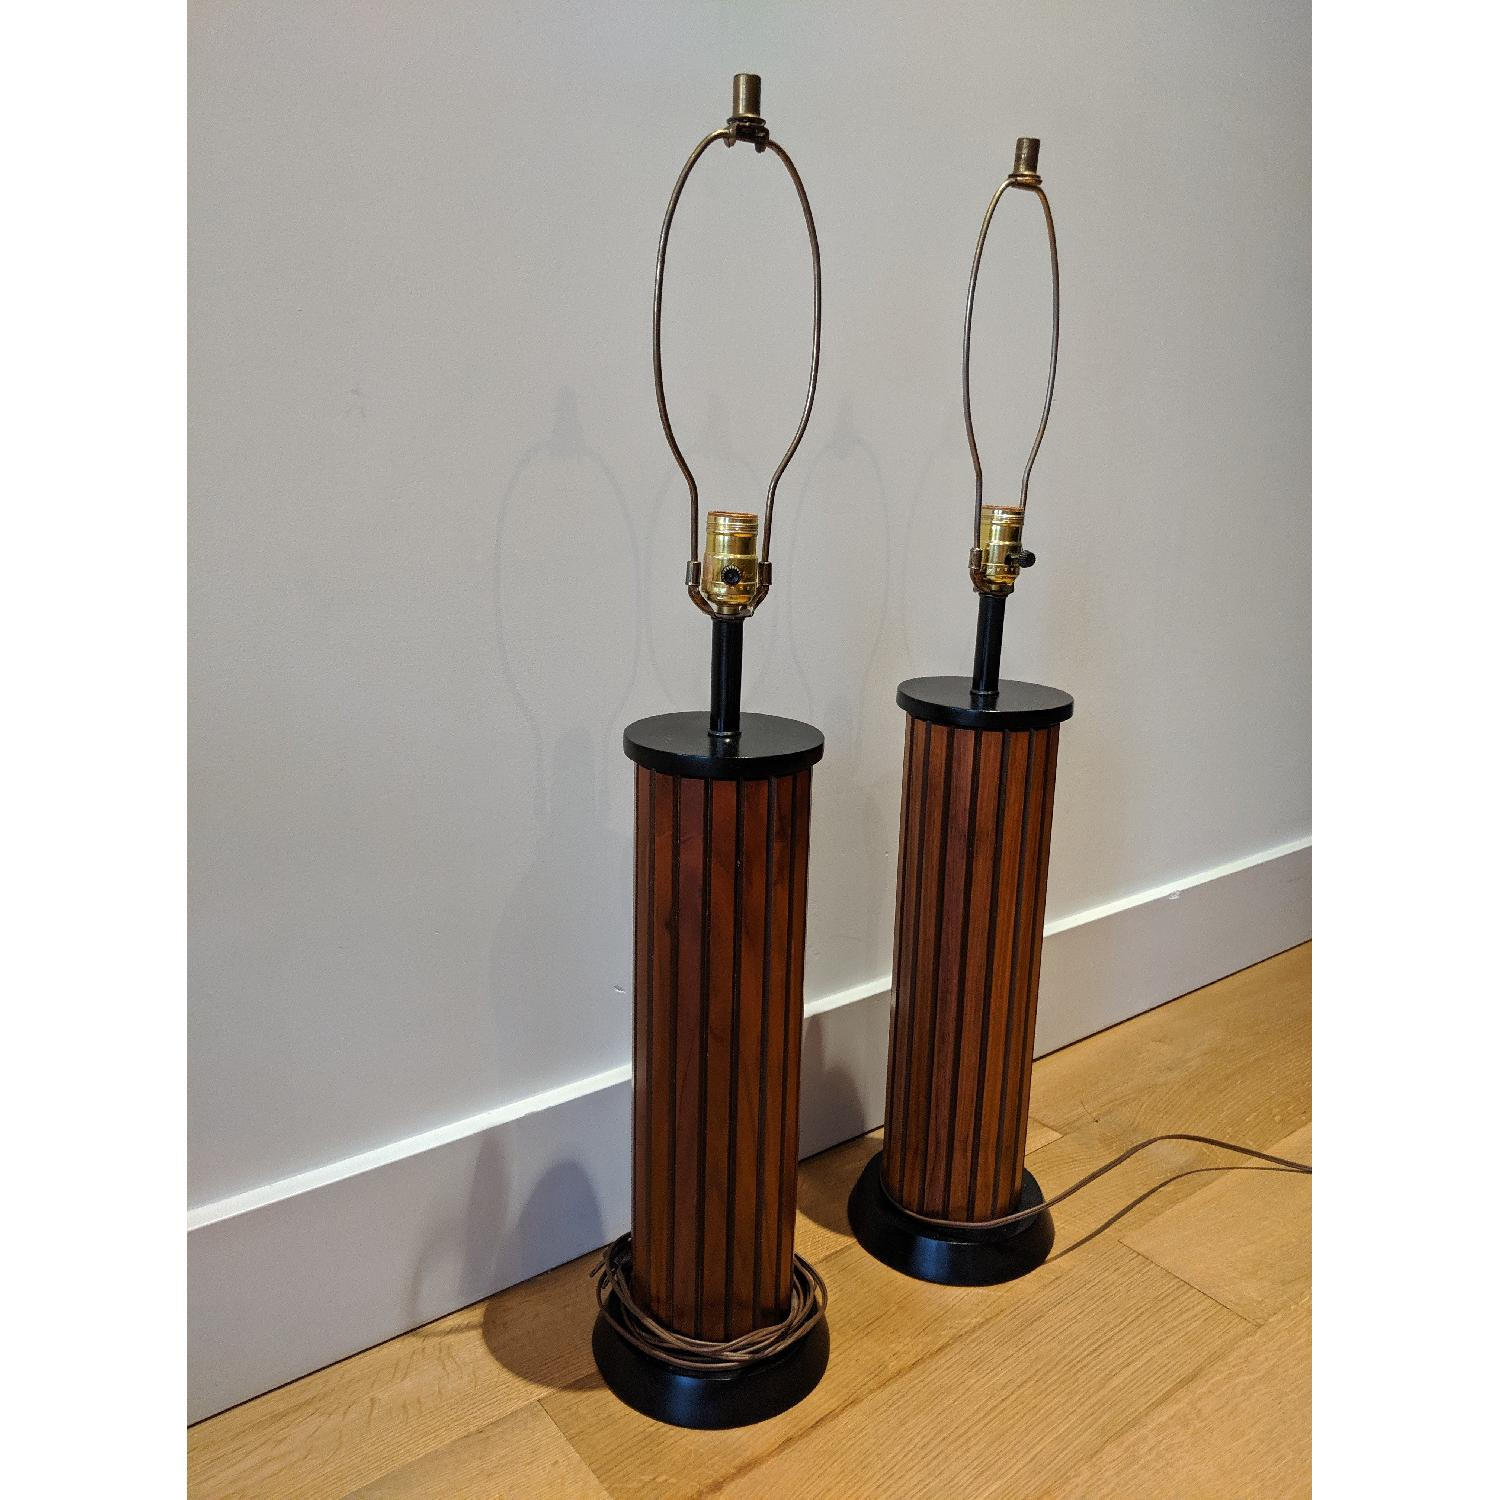 Vintage Mid Century Modern Lamps - image-1